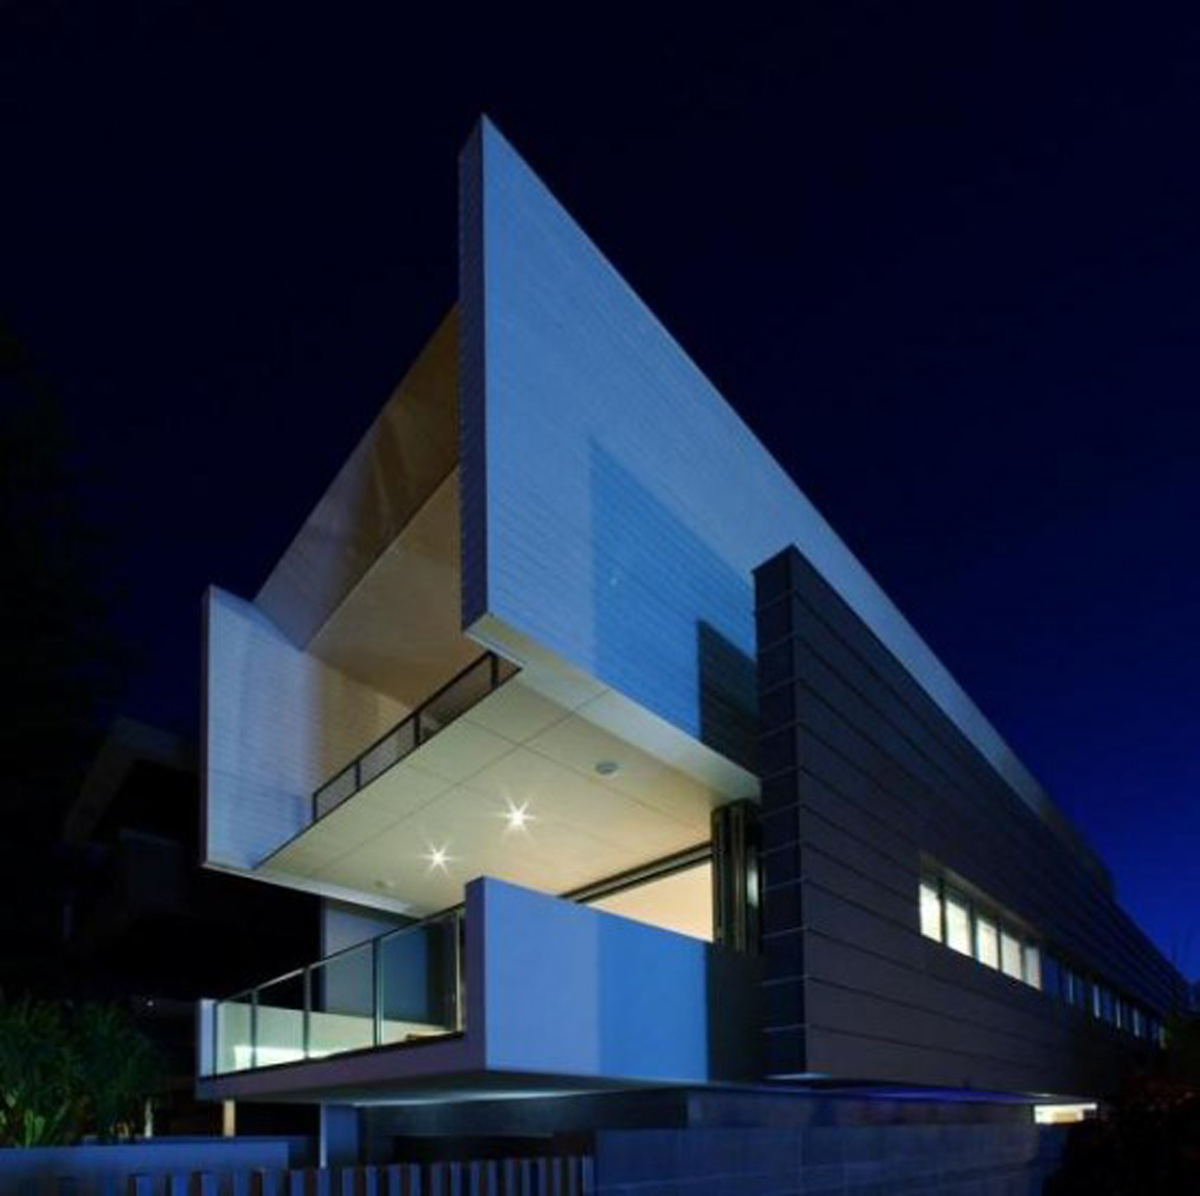 Two Level Beach House Architecture in Australia - Night View